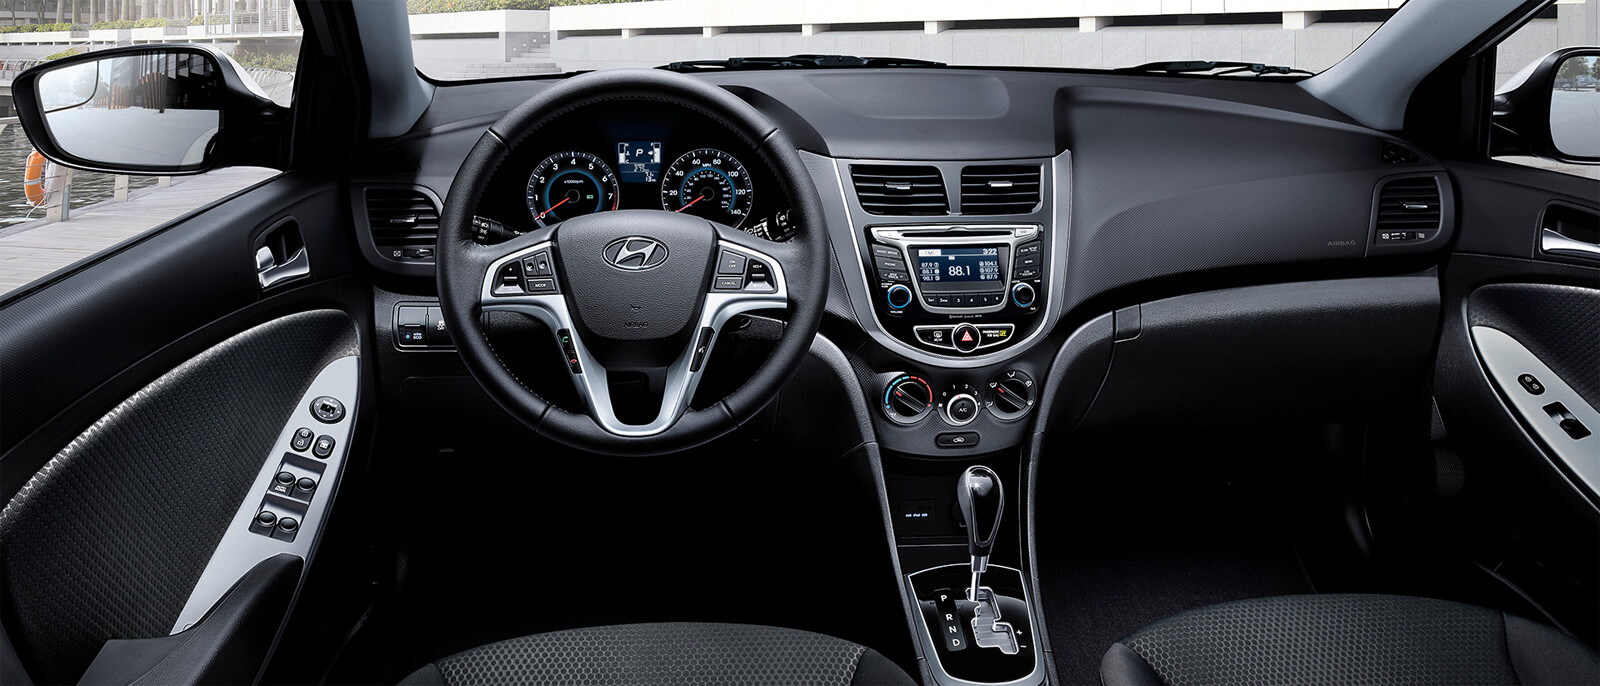 canada en car small night best at red sedan exterior img hyundai compact picture showroom of side accent door